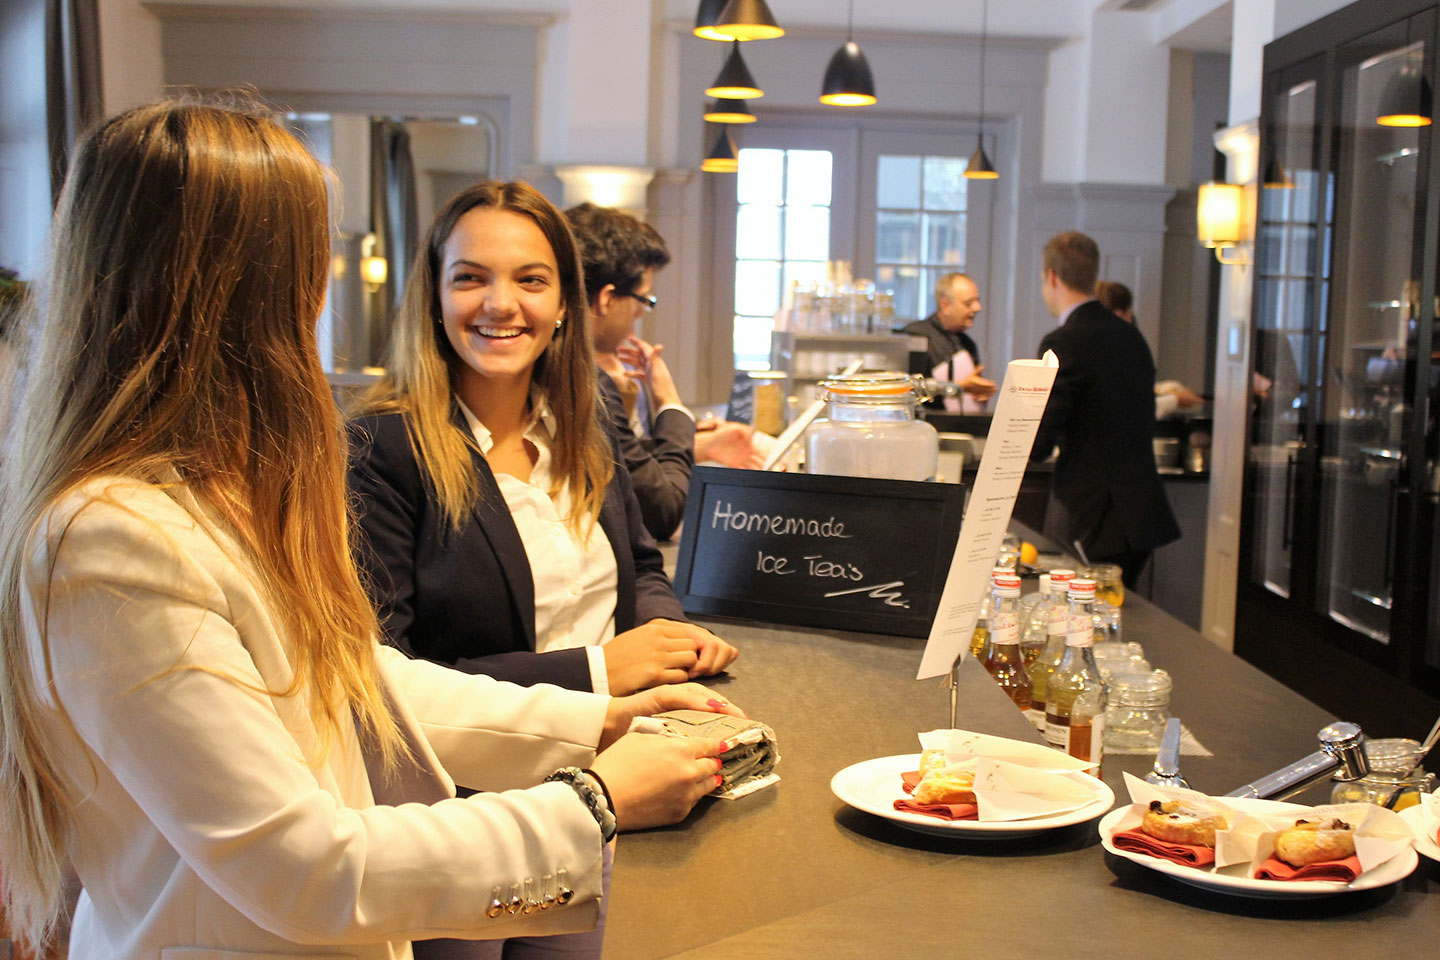 Skilled hospitality students at EHL Swiss School of Tourism and Hospitality